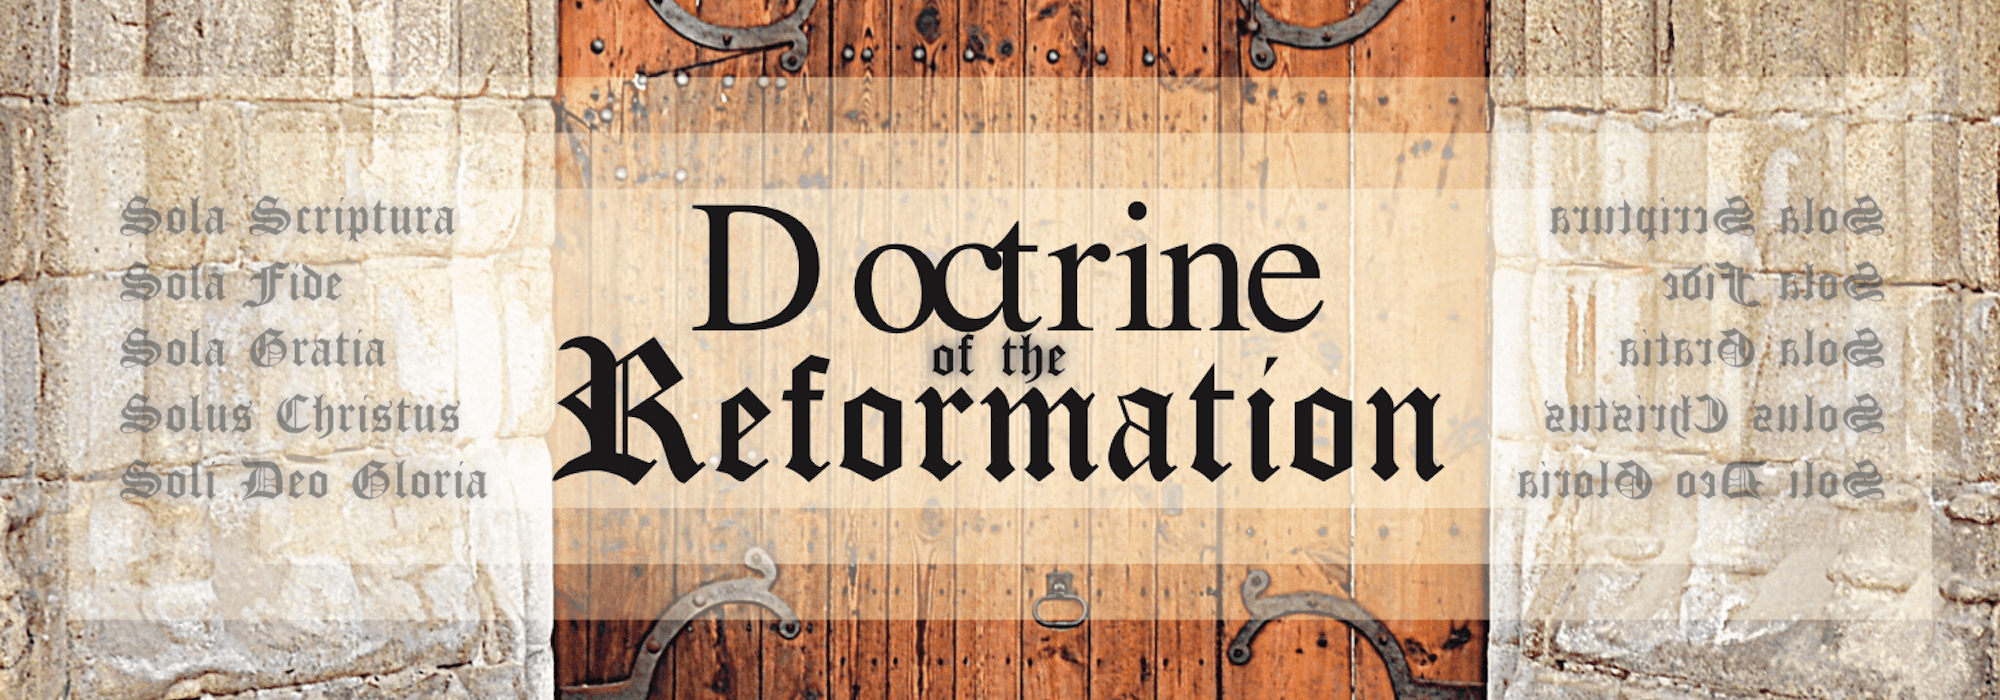 Sola Scriptura: Definitions and Bible References